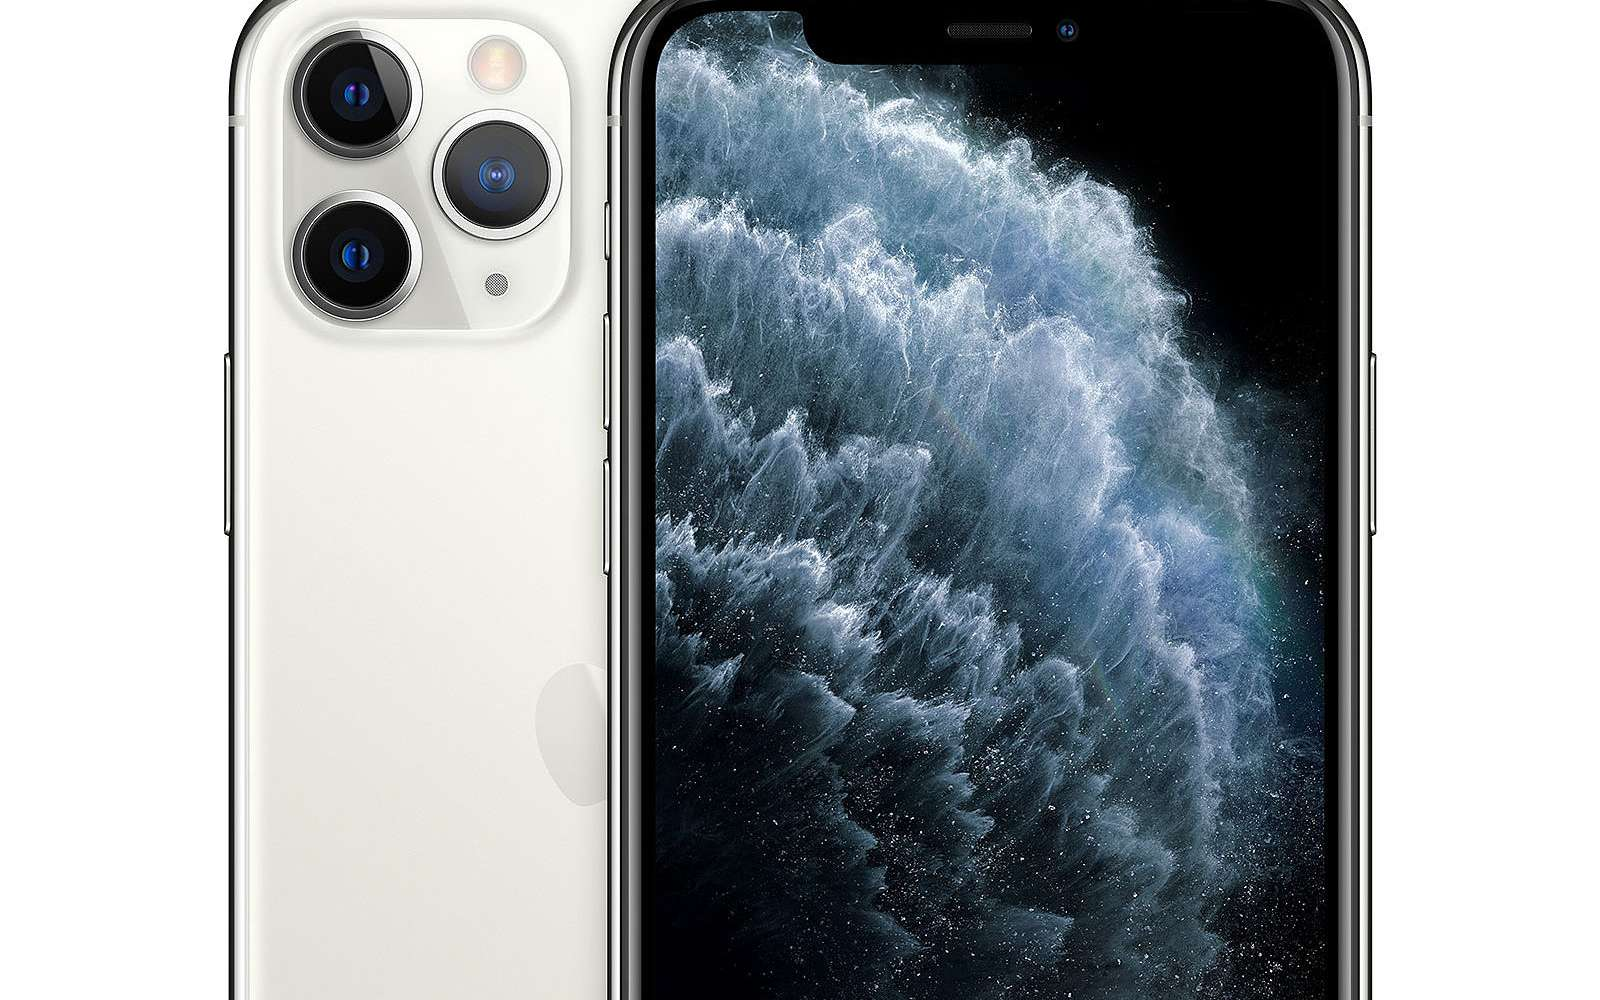 Pourquoi l'iPhone 11 a-t-il besoin de la puce GPS ? © Apple